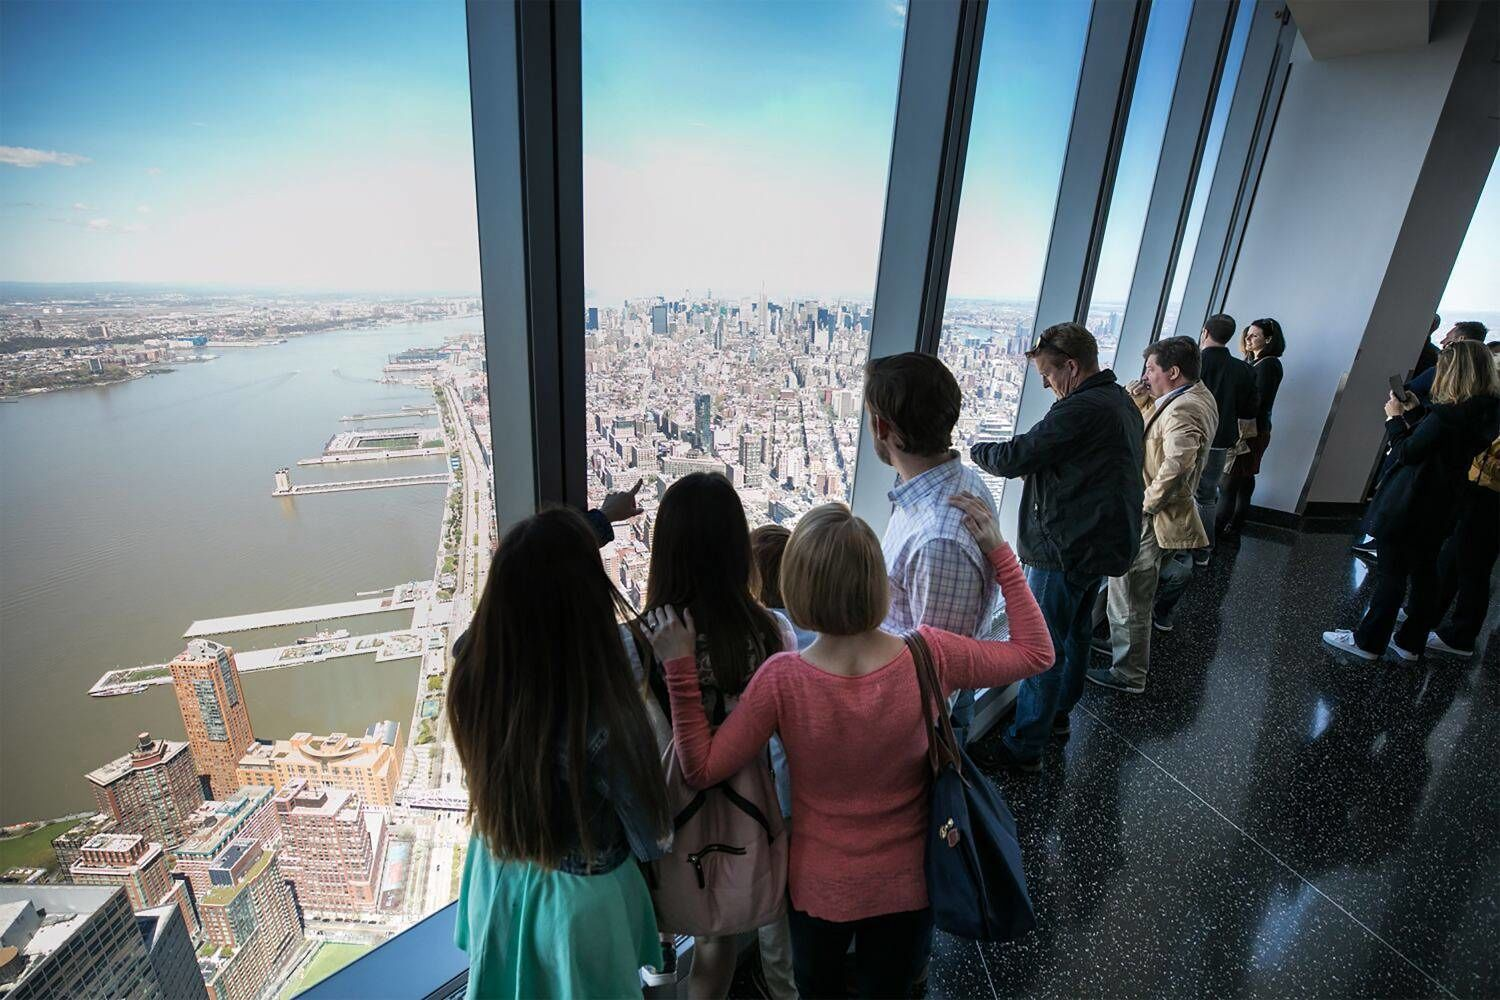 See 30 New York Sights(Walking Tour) & One World Observatory